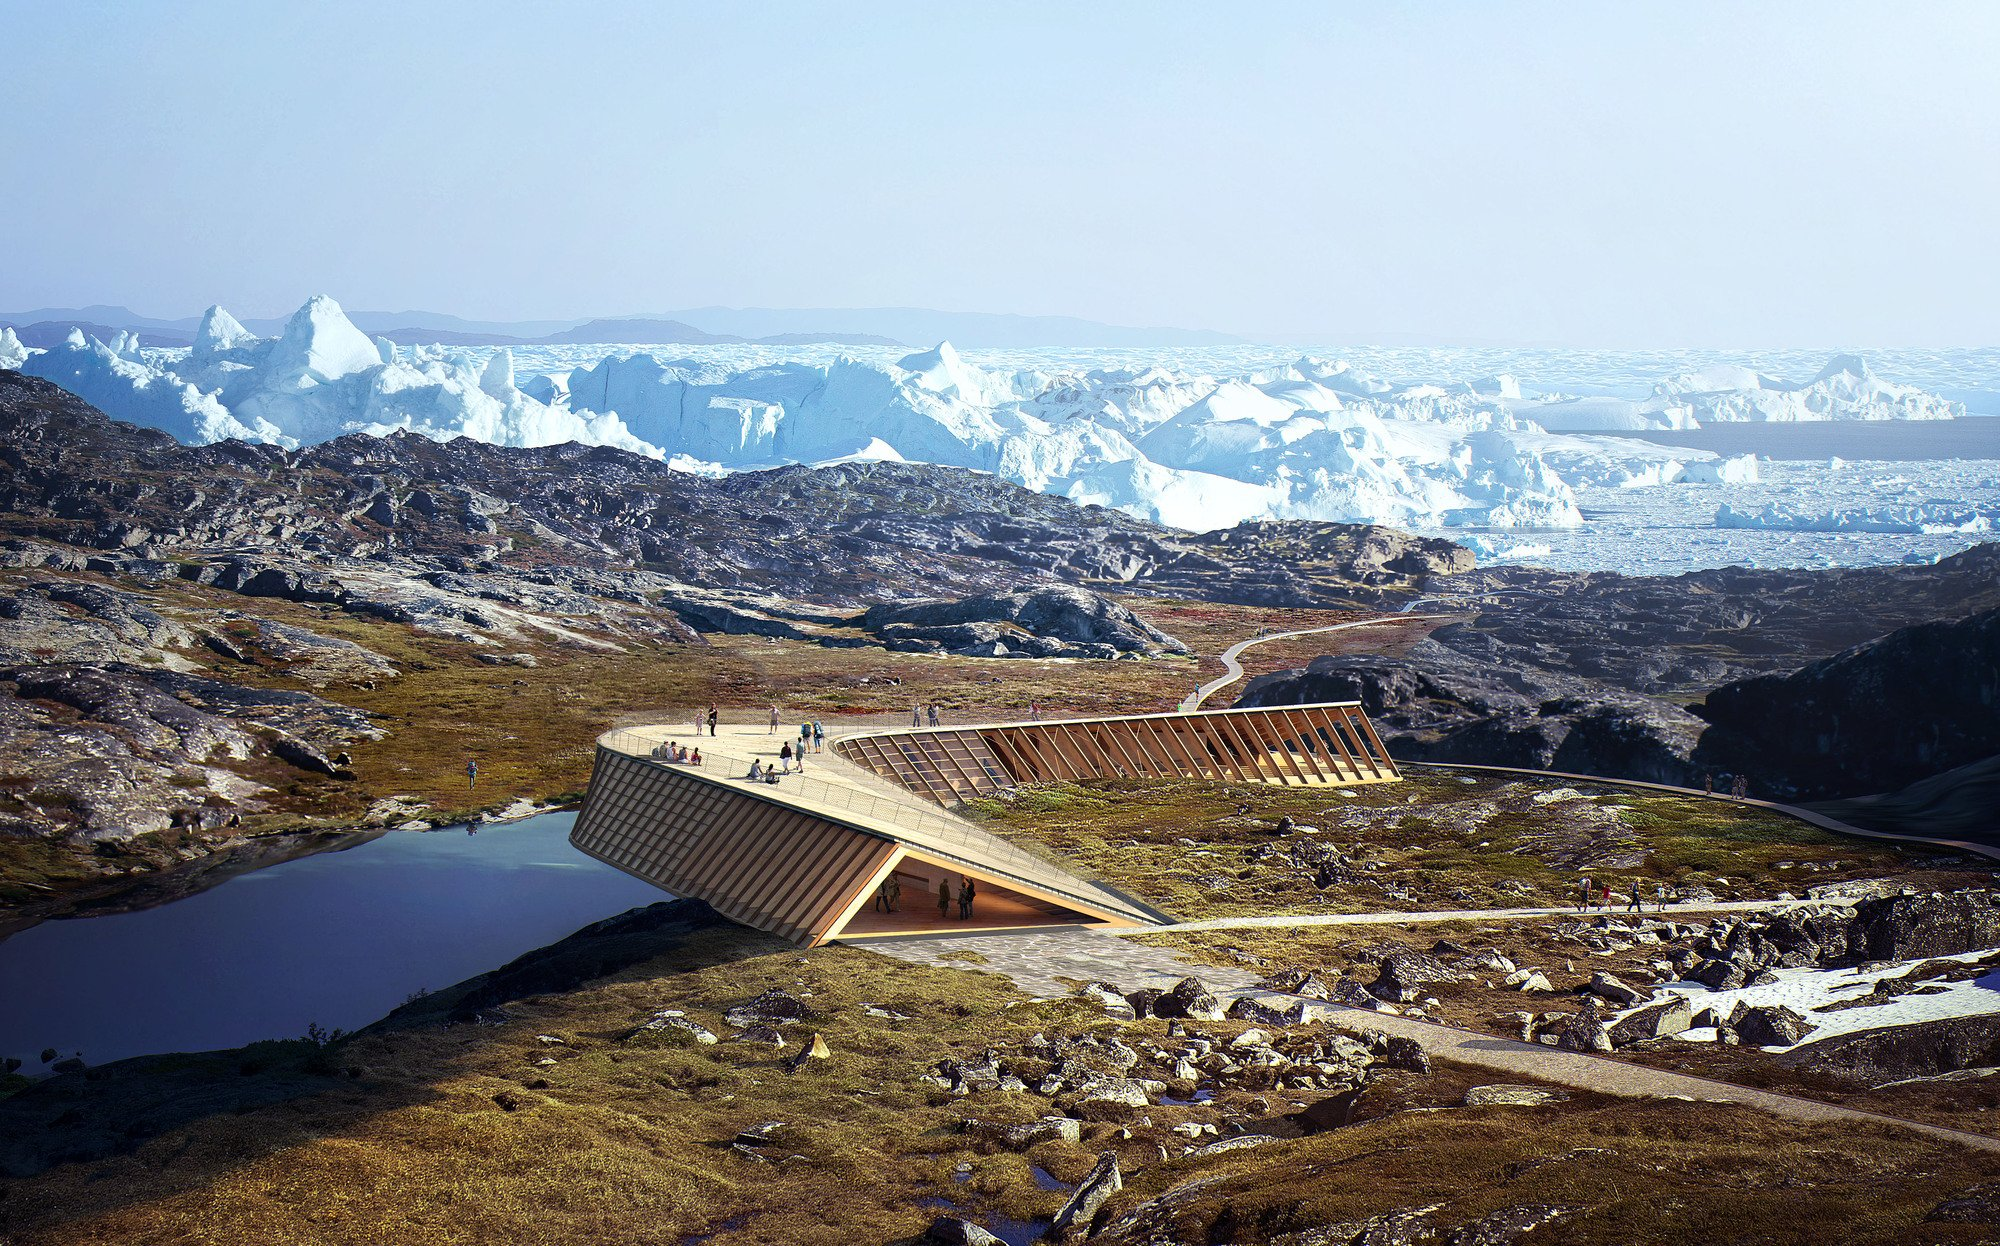 Thanks to philanthropic efforts, a long-awaited visitor center at Ilulissat Icefjord could soon become a reality